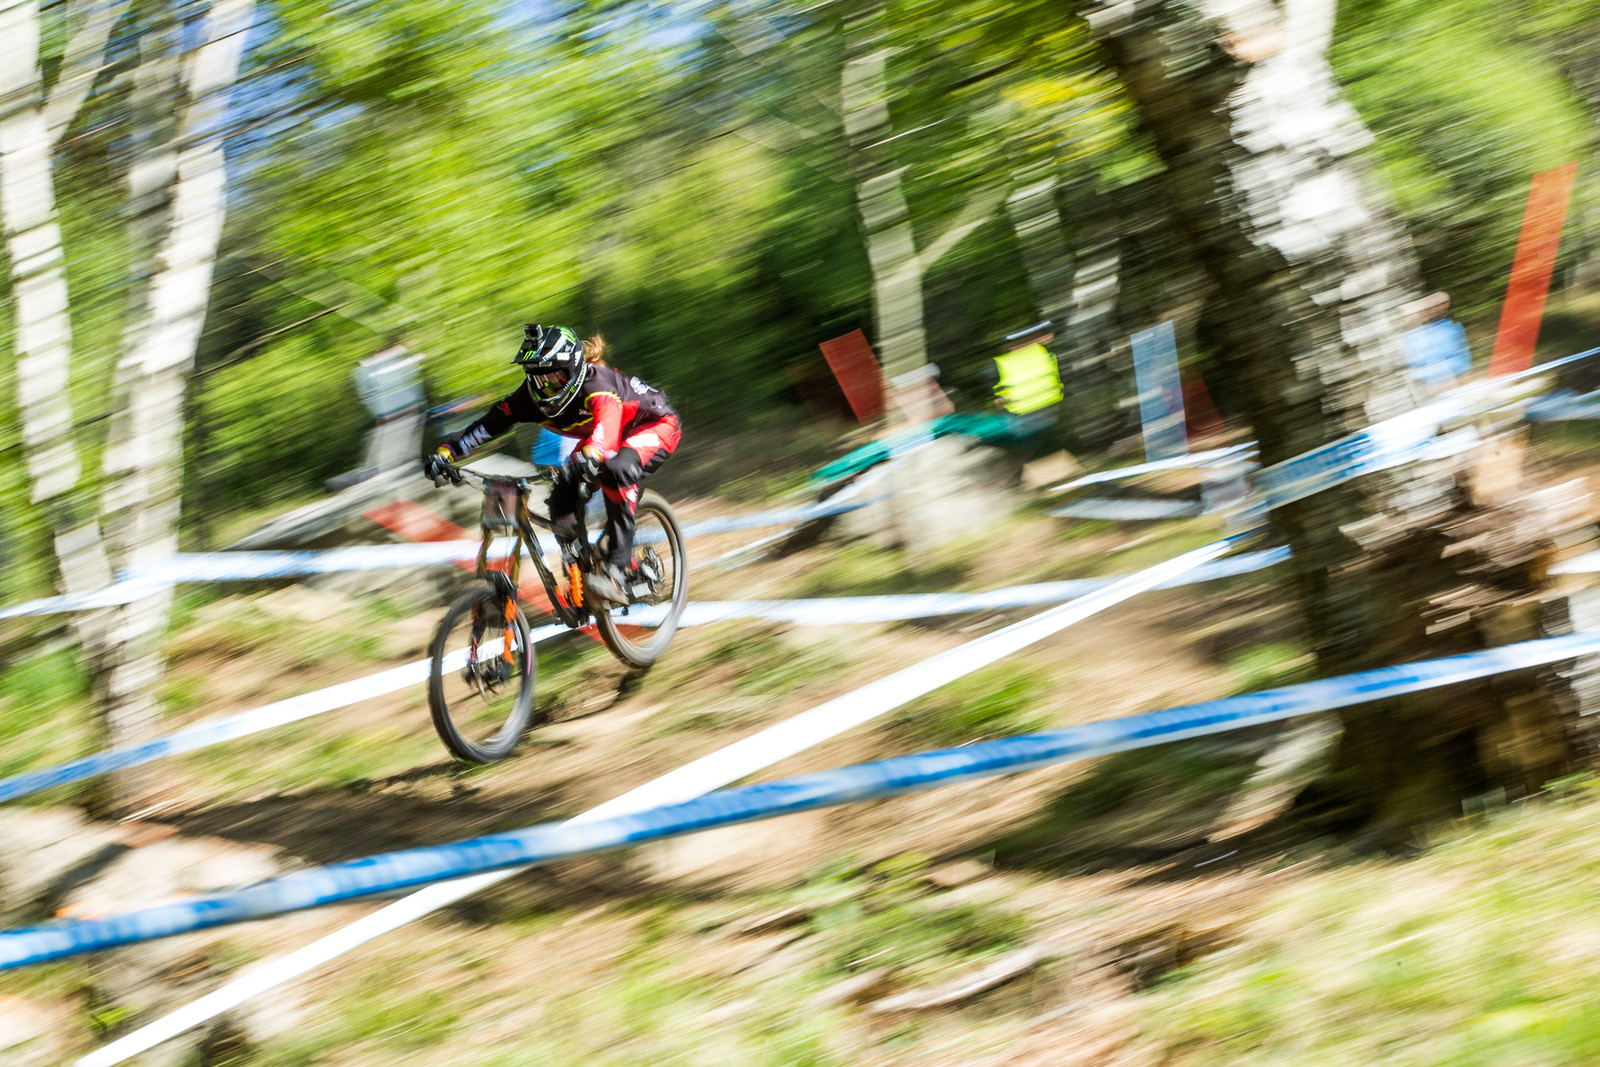 Manon Carpenter - Lourdes World Cup Timed Training Action Photos - Mountain Biking Pictures - Vital MTB